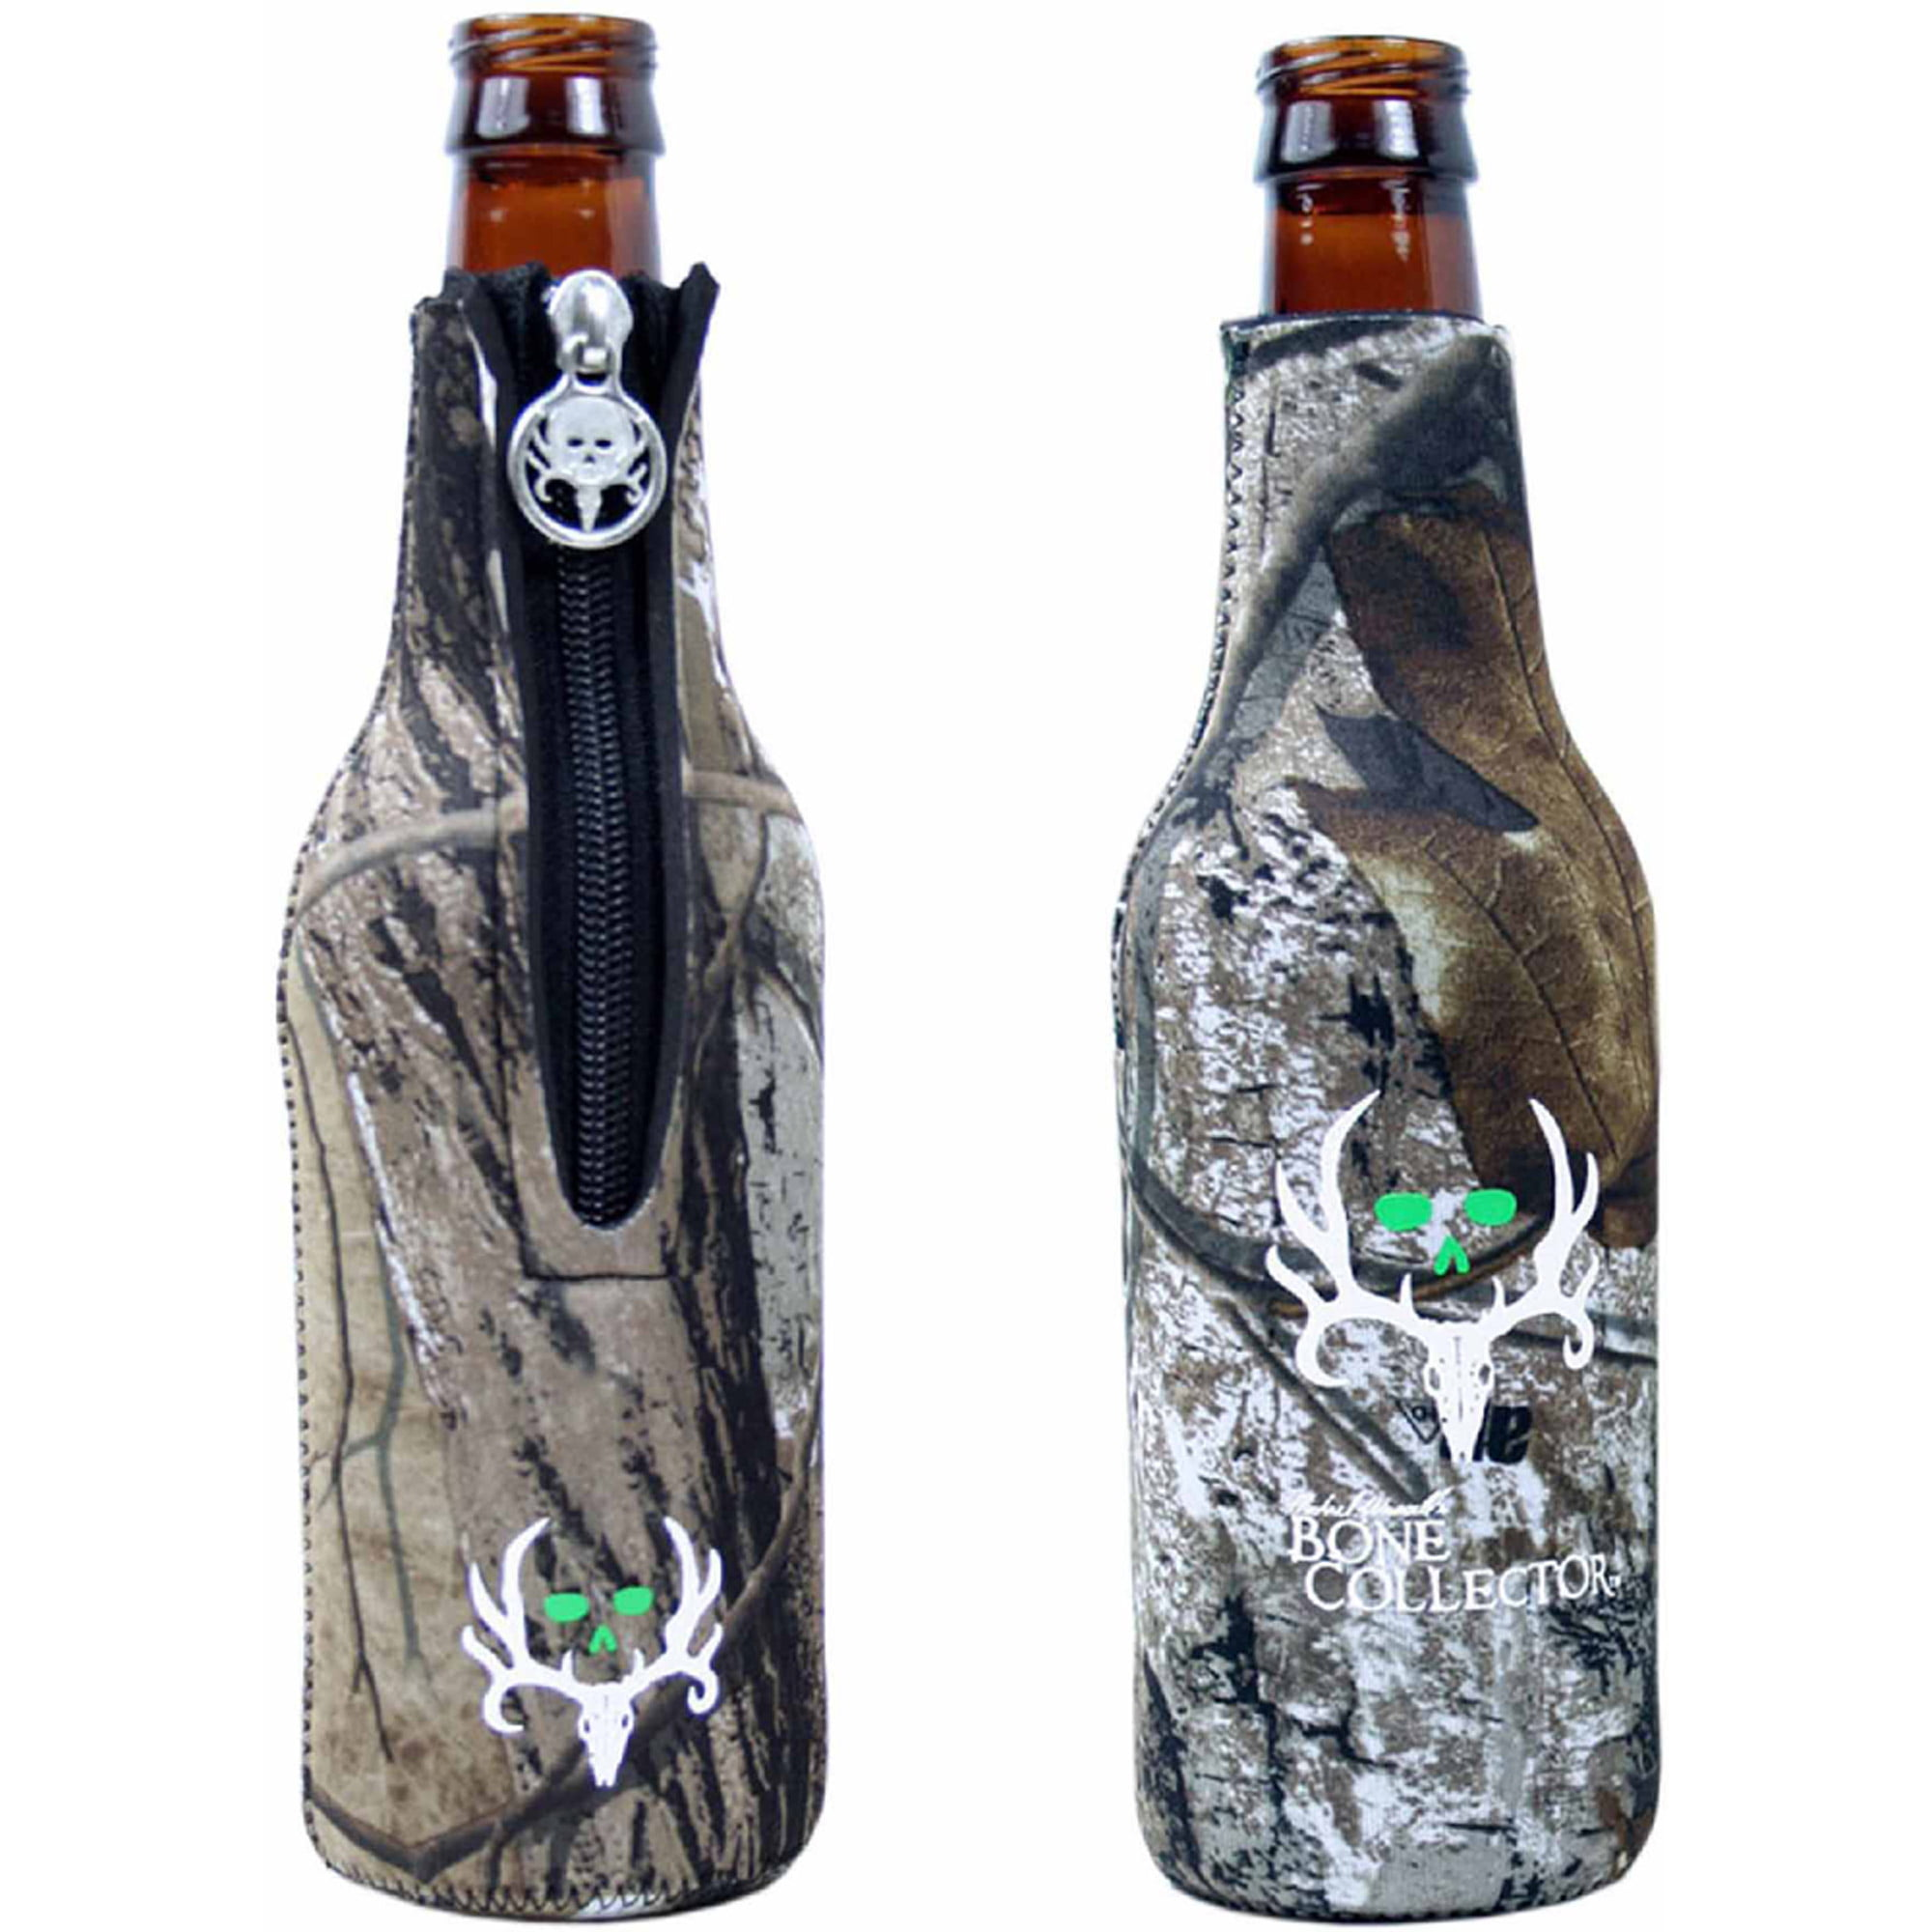 Bone Collector Bottle Coozie, Camo by ABSOLUTE EYEWEAR SOLUTIONS LLC